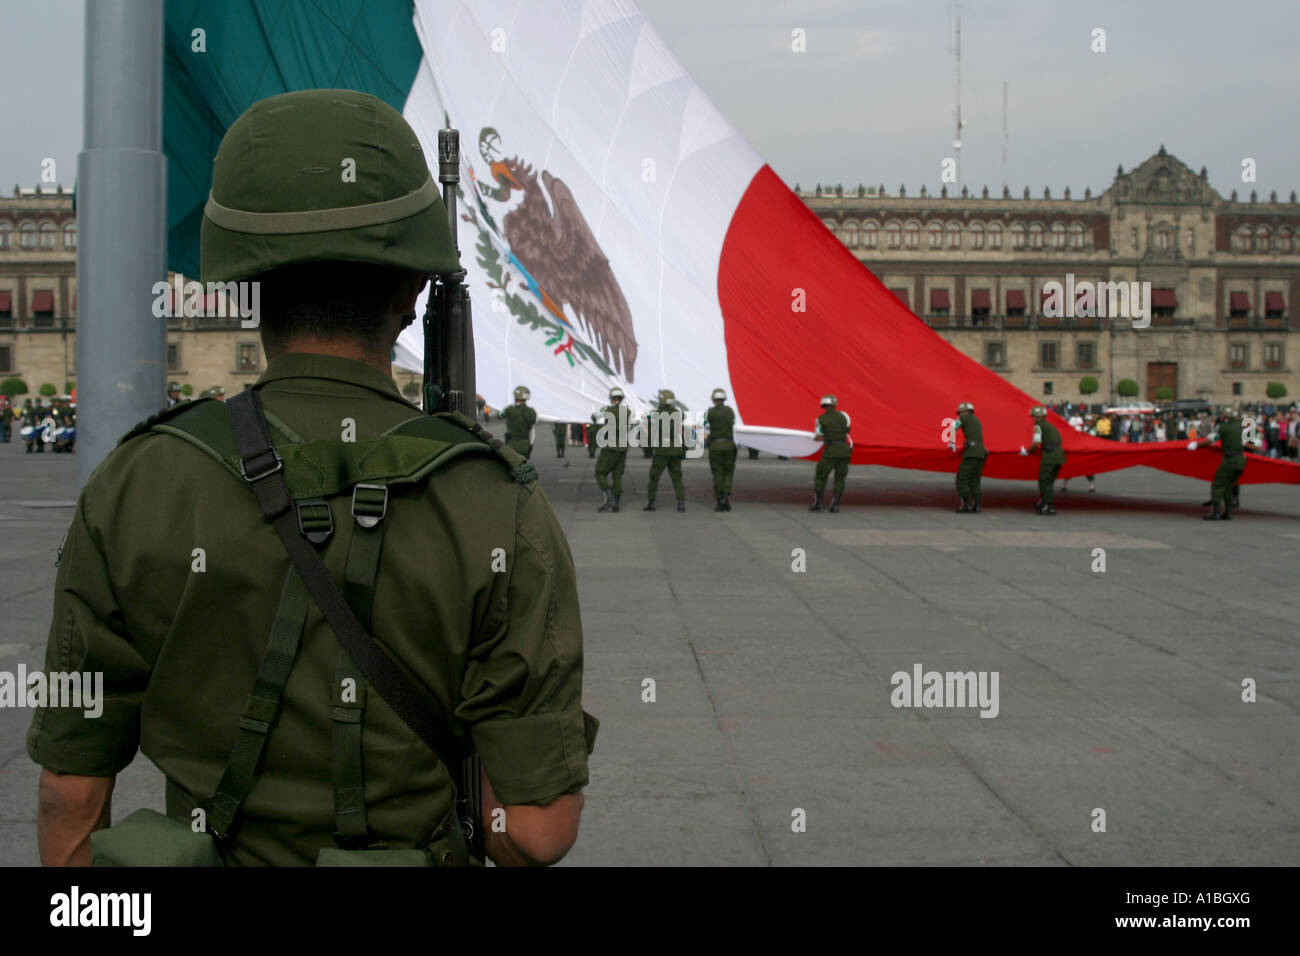 A soldier stands guard during the daily lowering of the flag in the Zocalo of Mexico City, Mexico. - Stock Image